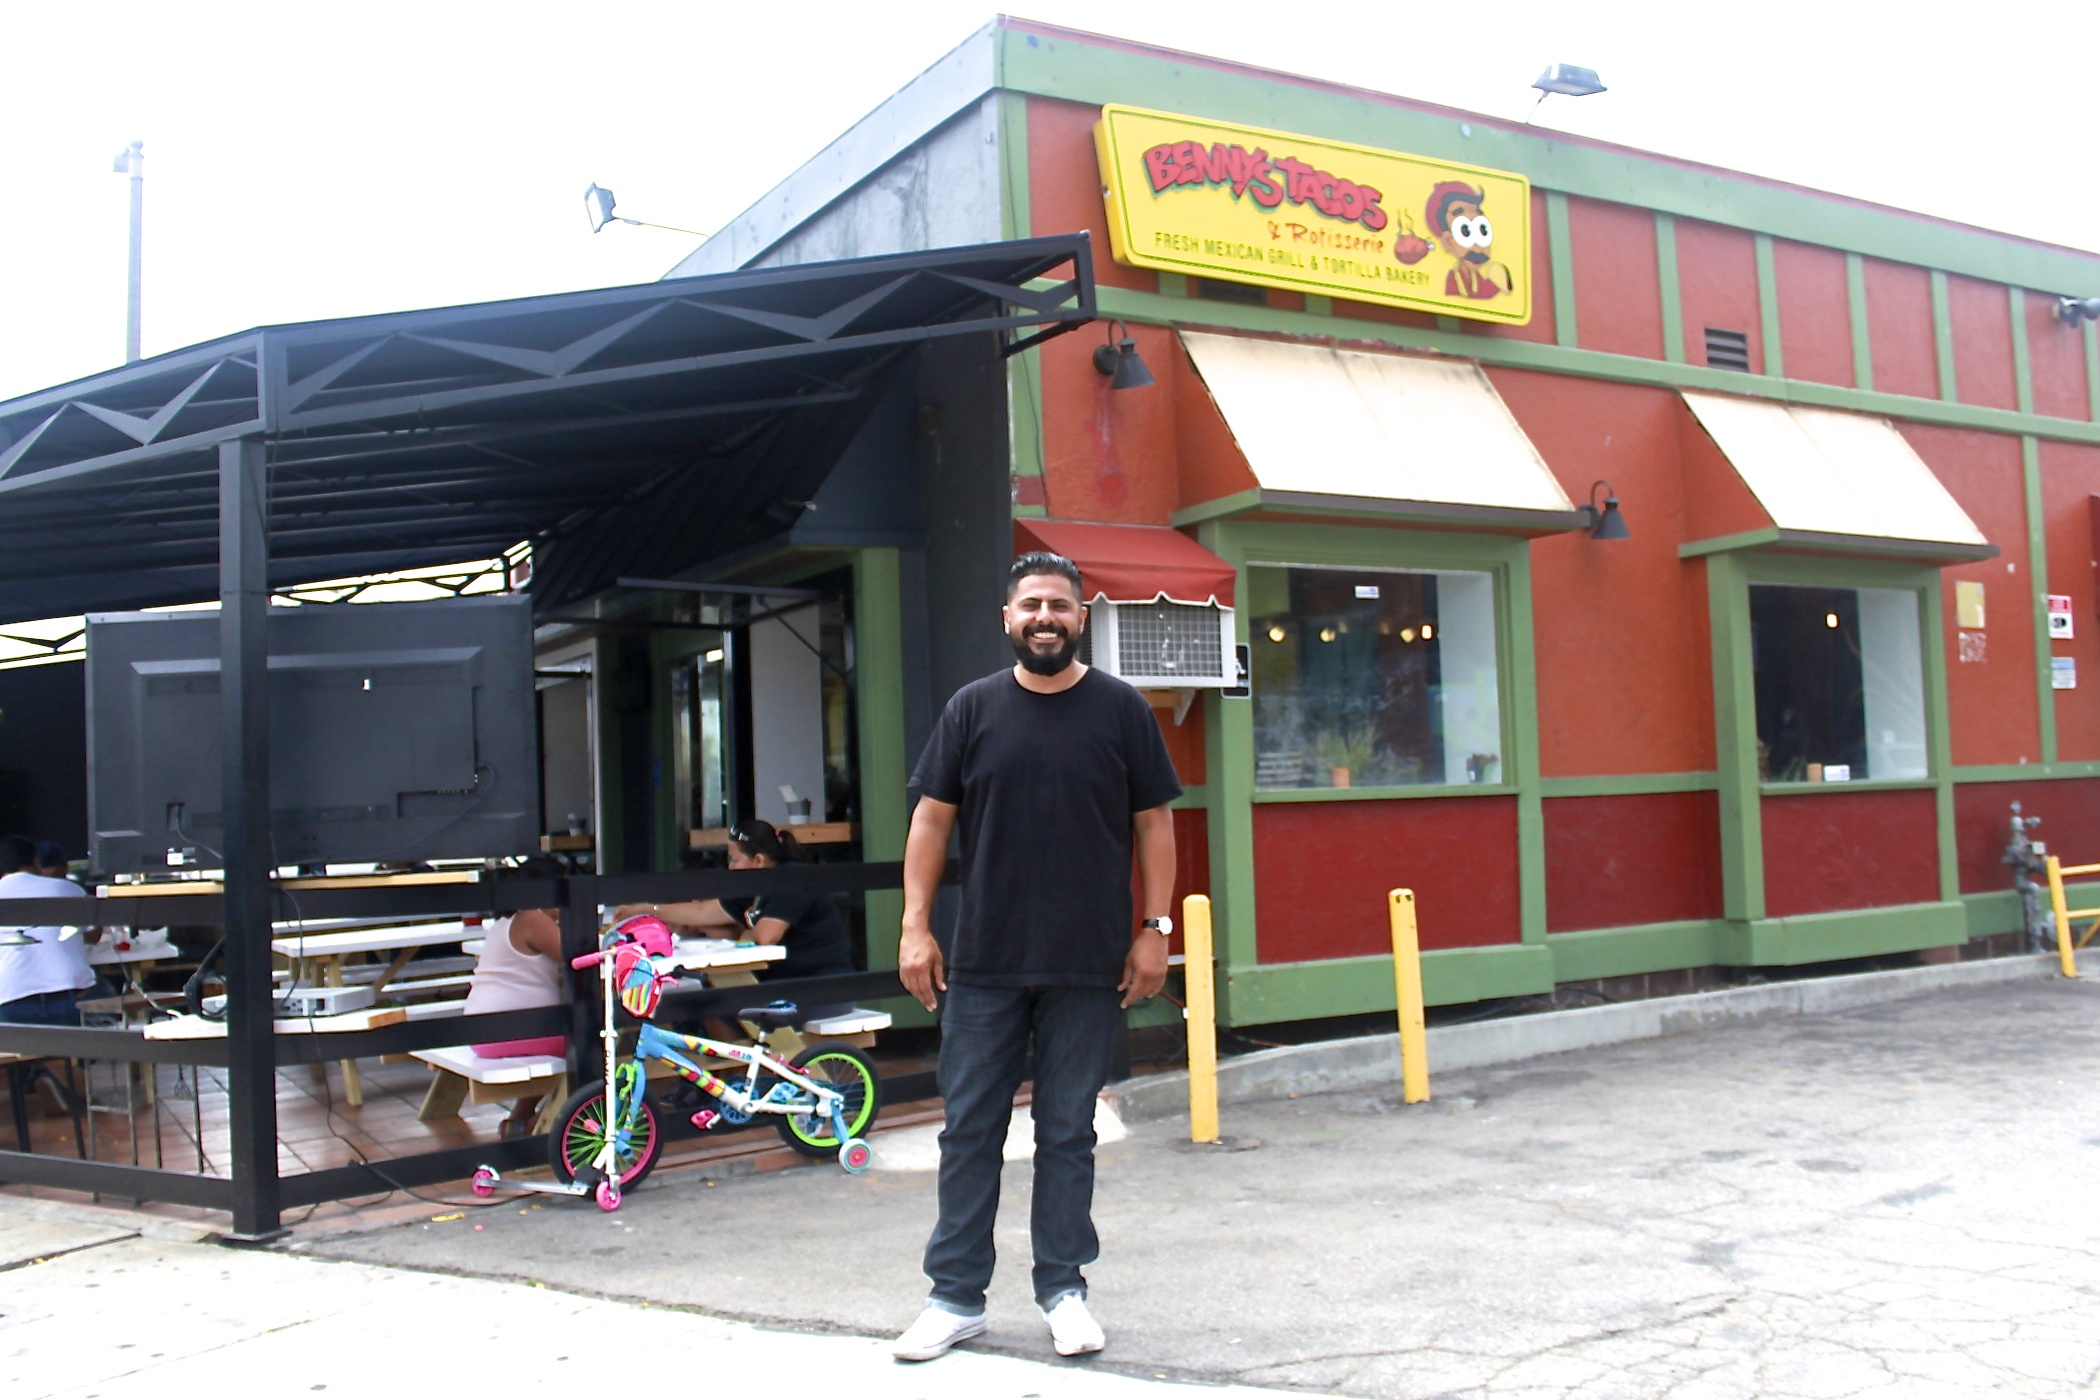 Venice local Oscar Hermosillo, restaurateur behind Rose Ave hot spots Venice Beach Wines and Oscar's Cerveteca, halts Benny's Tacos from becoming a Fatburger and transforms it into Sunset Roadhouse.